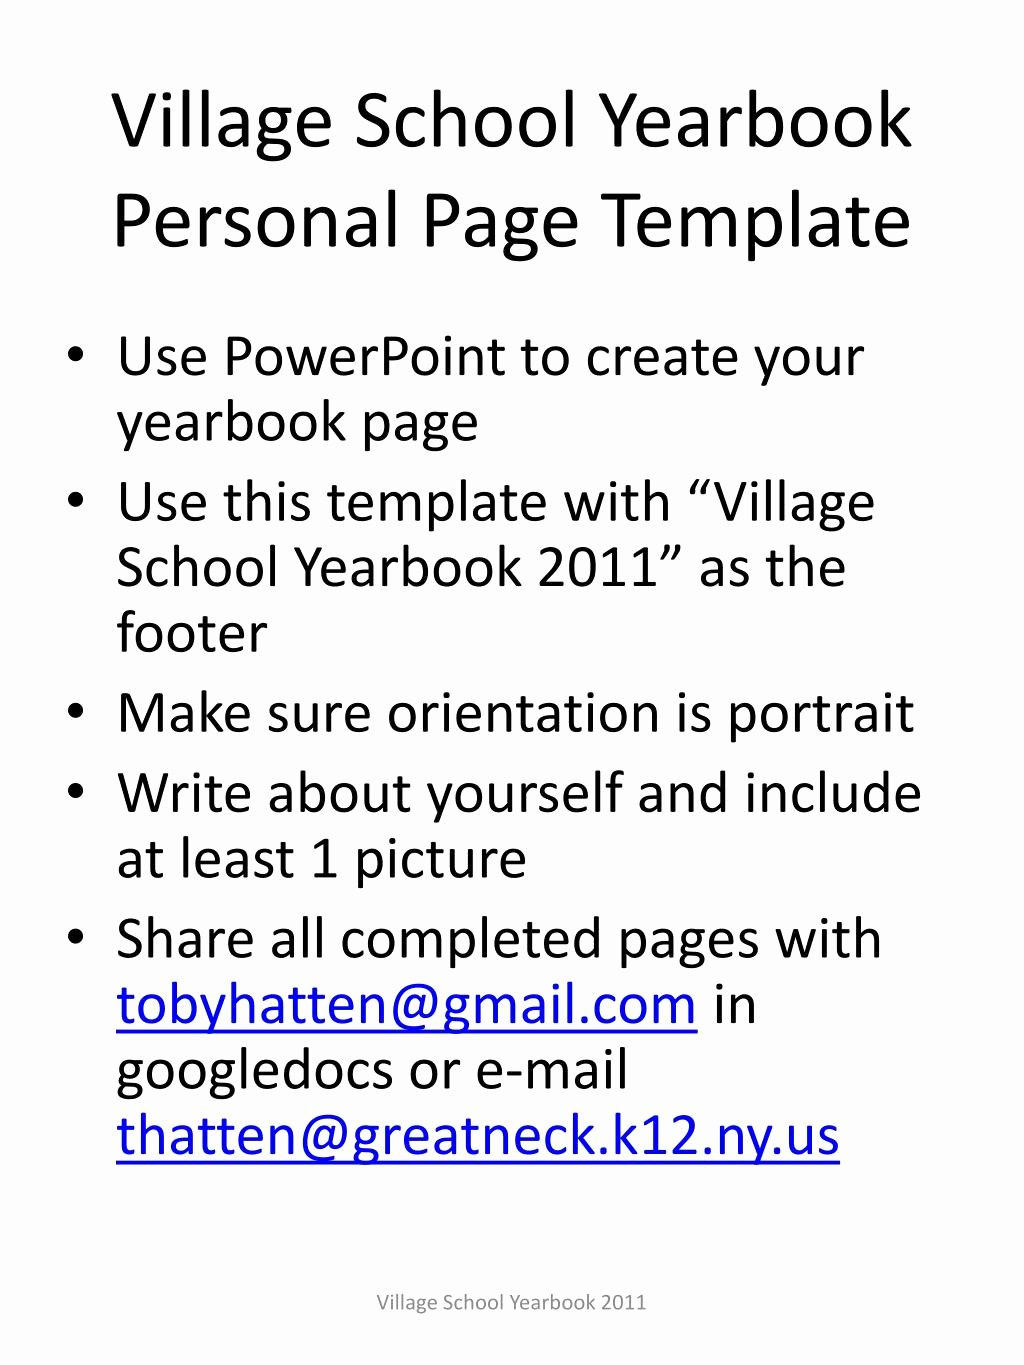 Yearbook Template Powerpoint New Ppt Village School Yearbook Personal Page Template